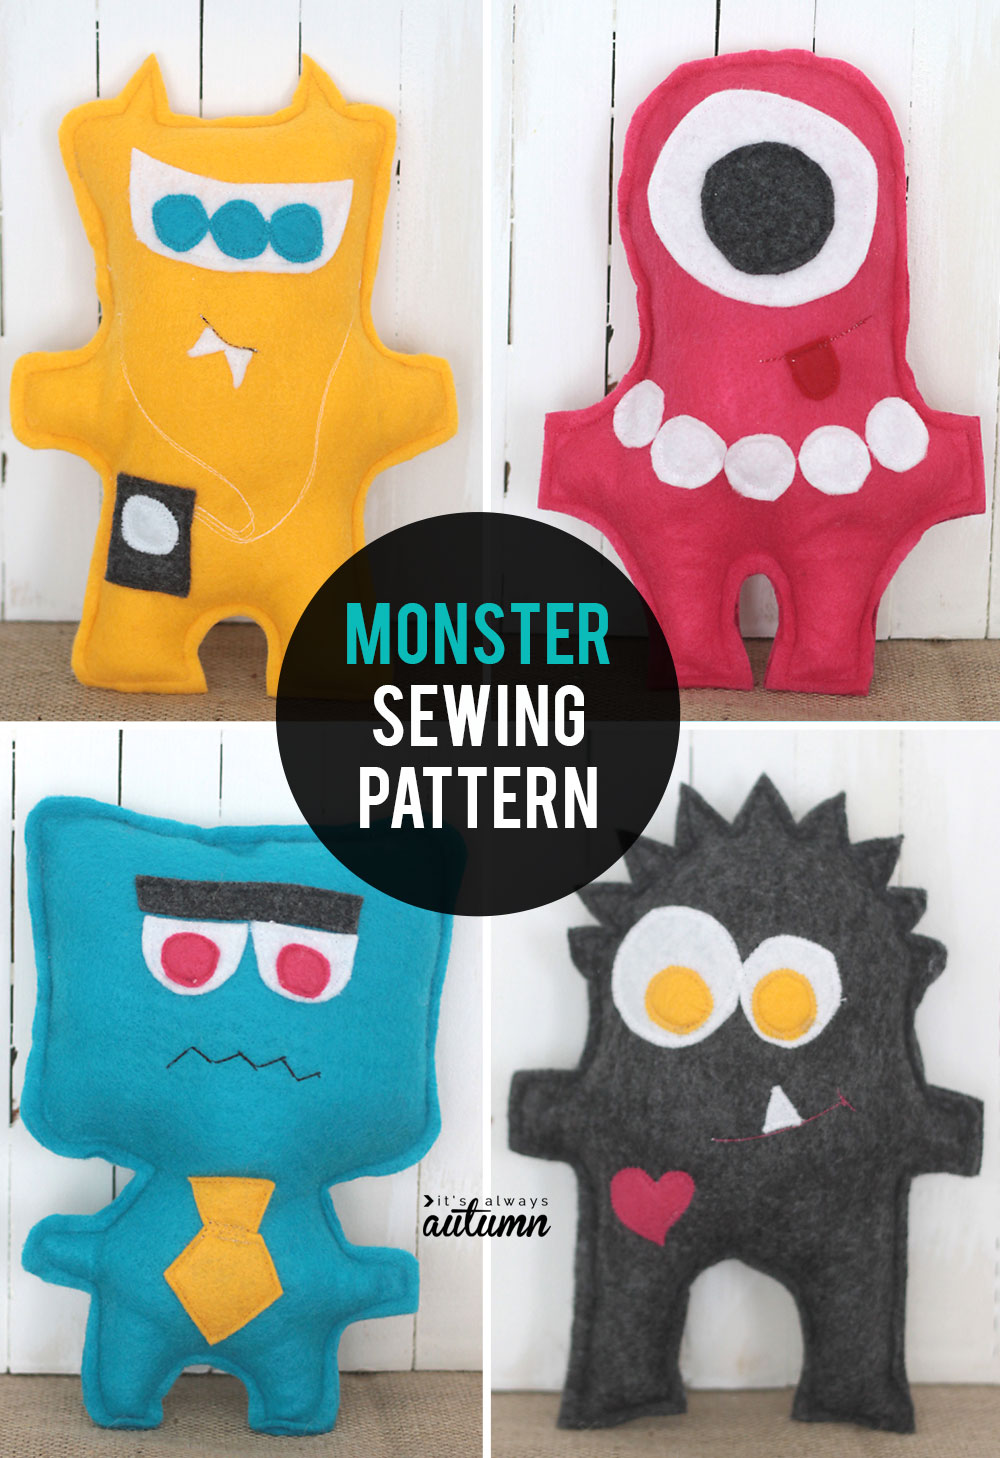 Click through for the free pattern for these adorable little felt monsters! Five mix-n-match monsters included in this easy beginner sewing project.